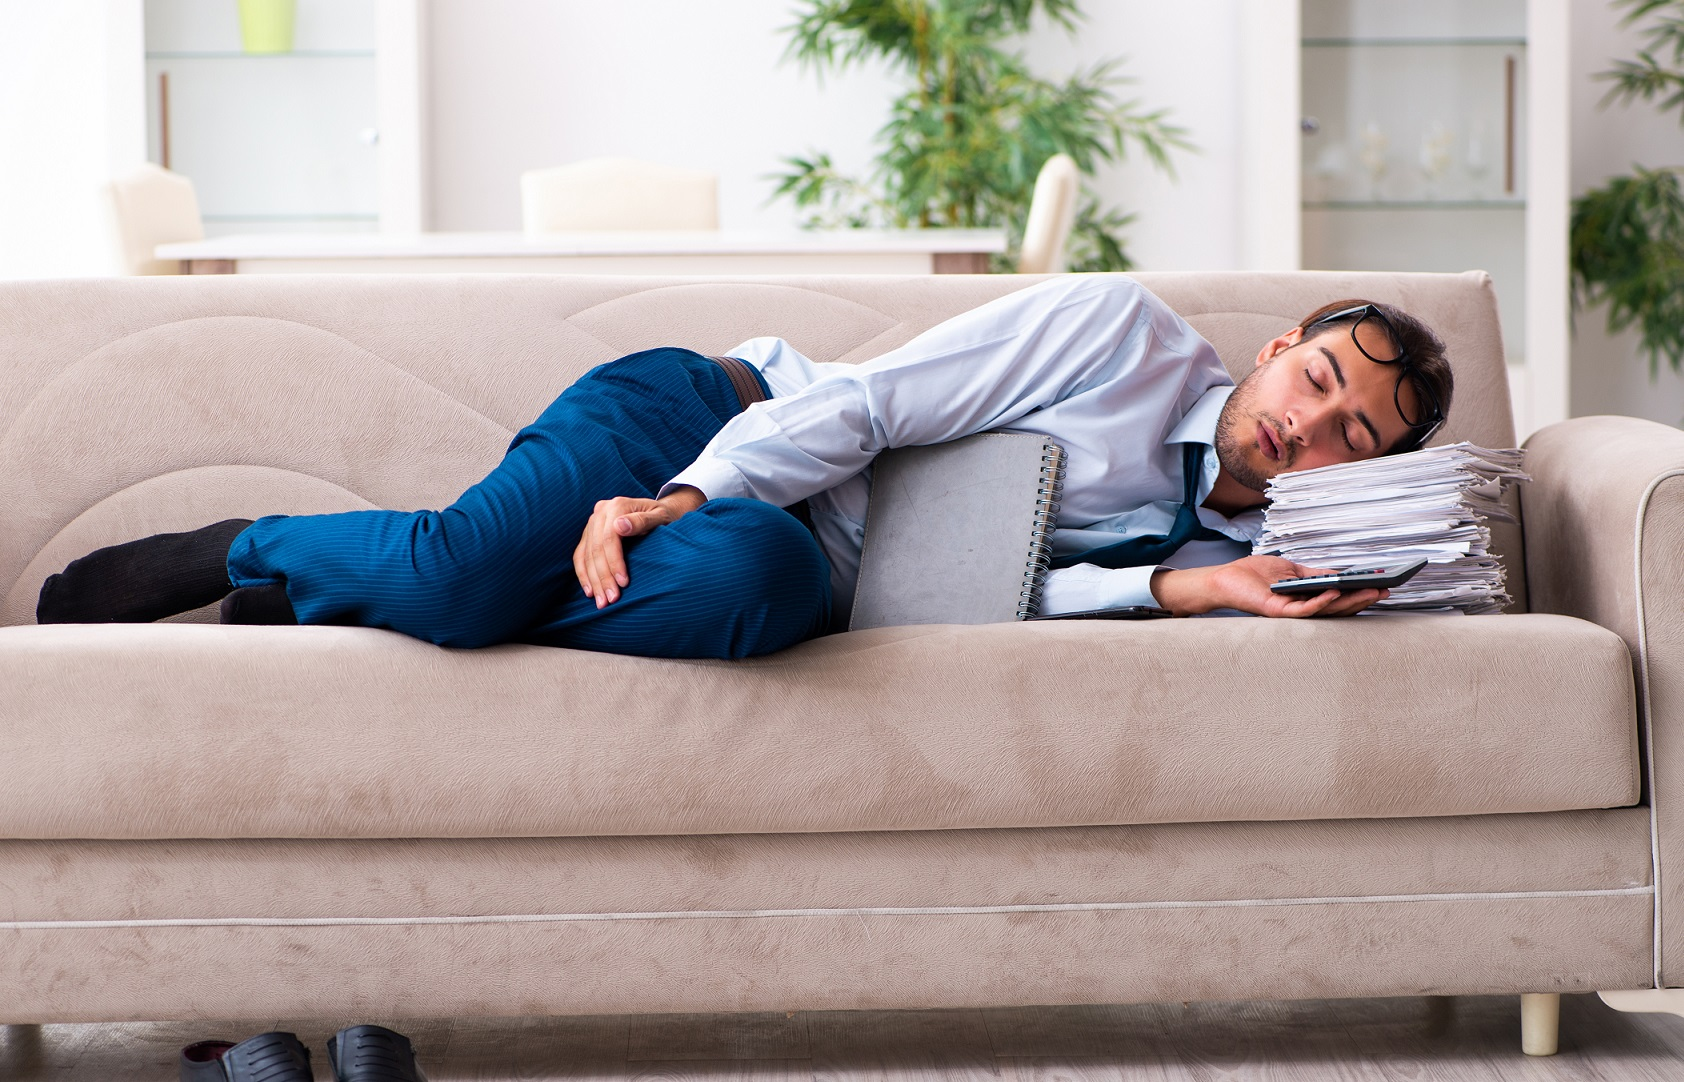 How To Sleep Well While Working From Home